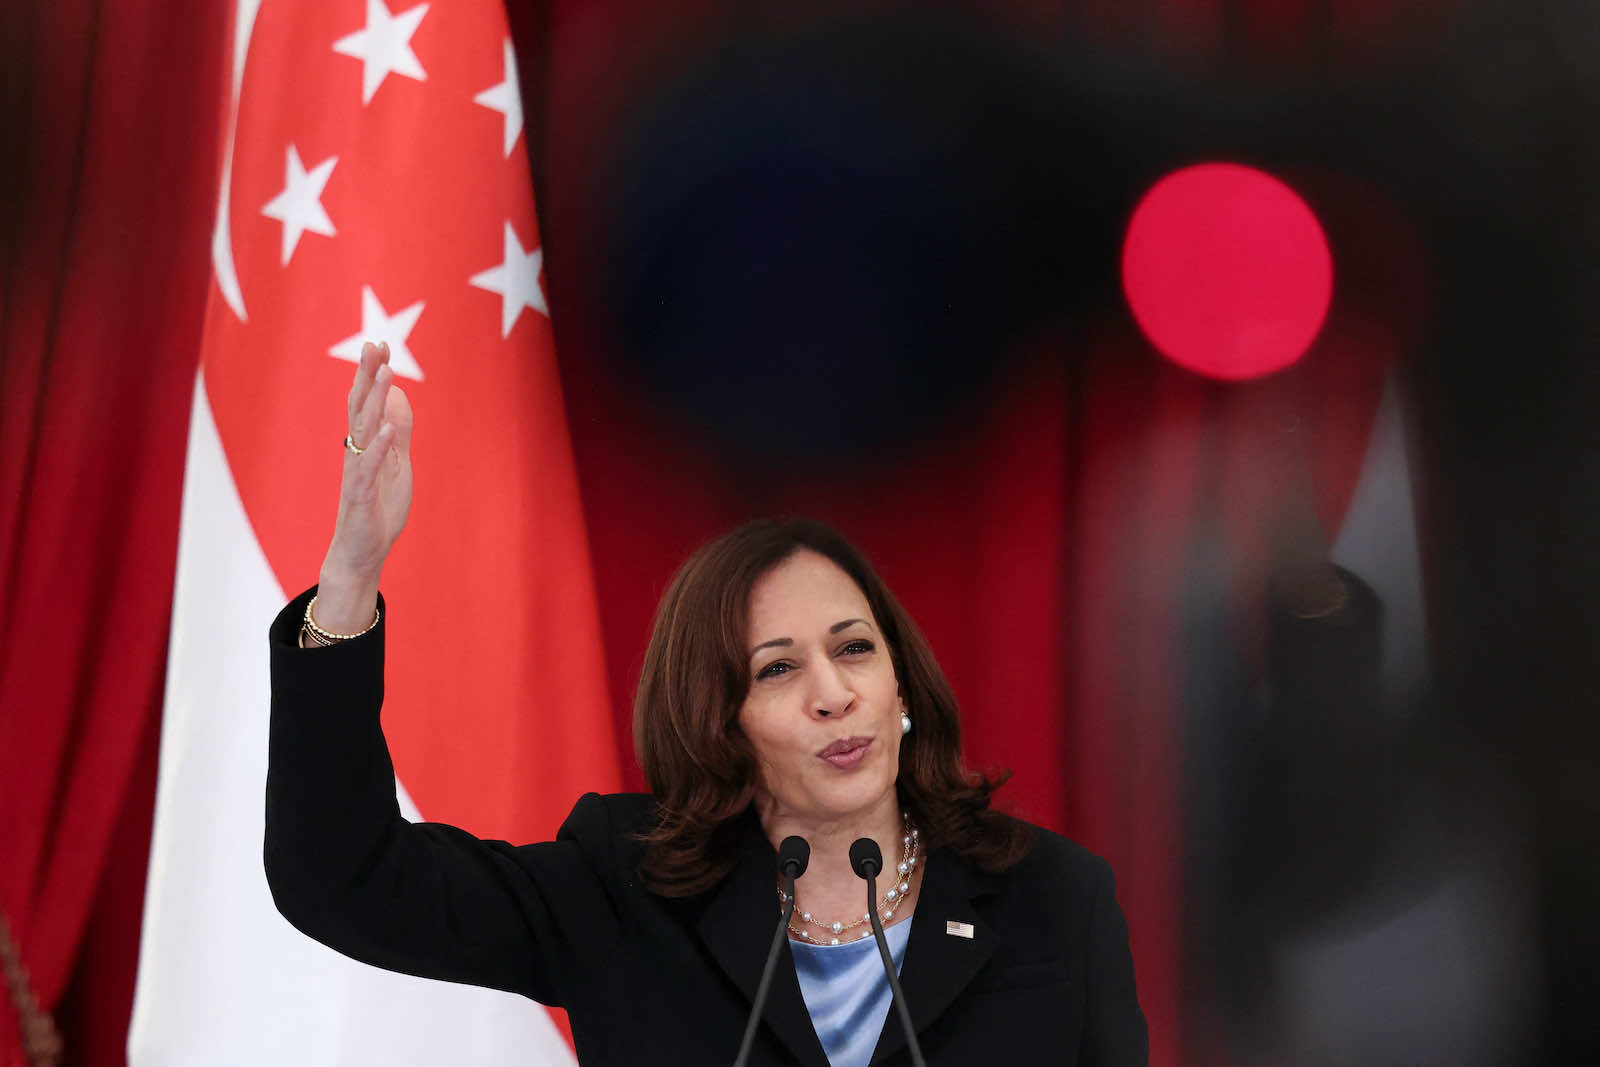 S Vice President Kamala Harris during a joint news conference with Singapore's Prime Minister Lee Hsien Loong in August